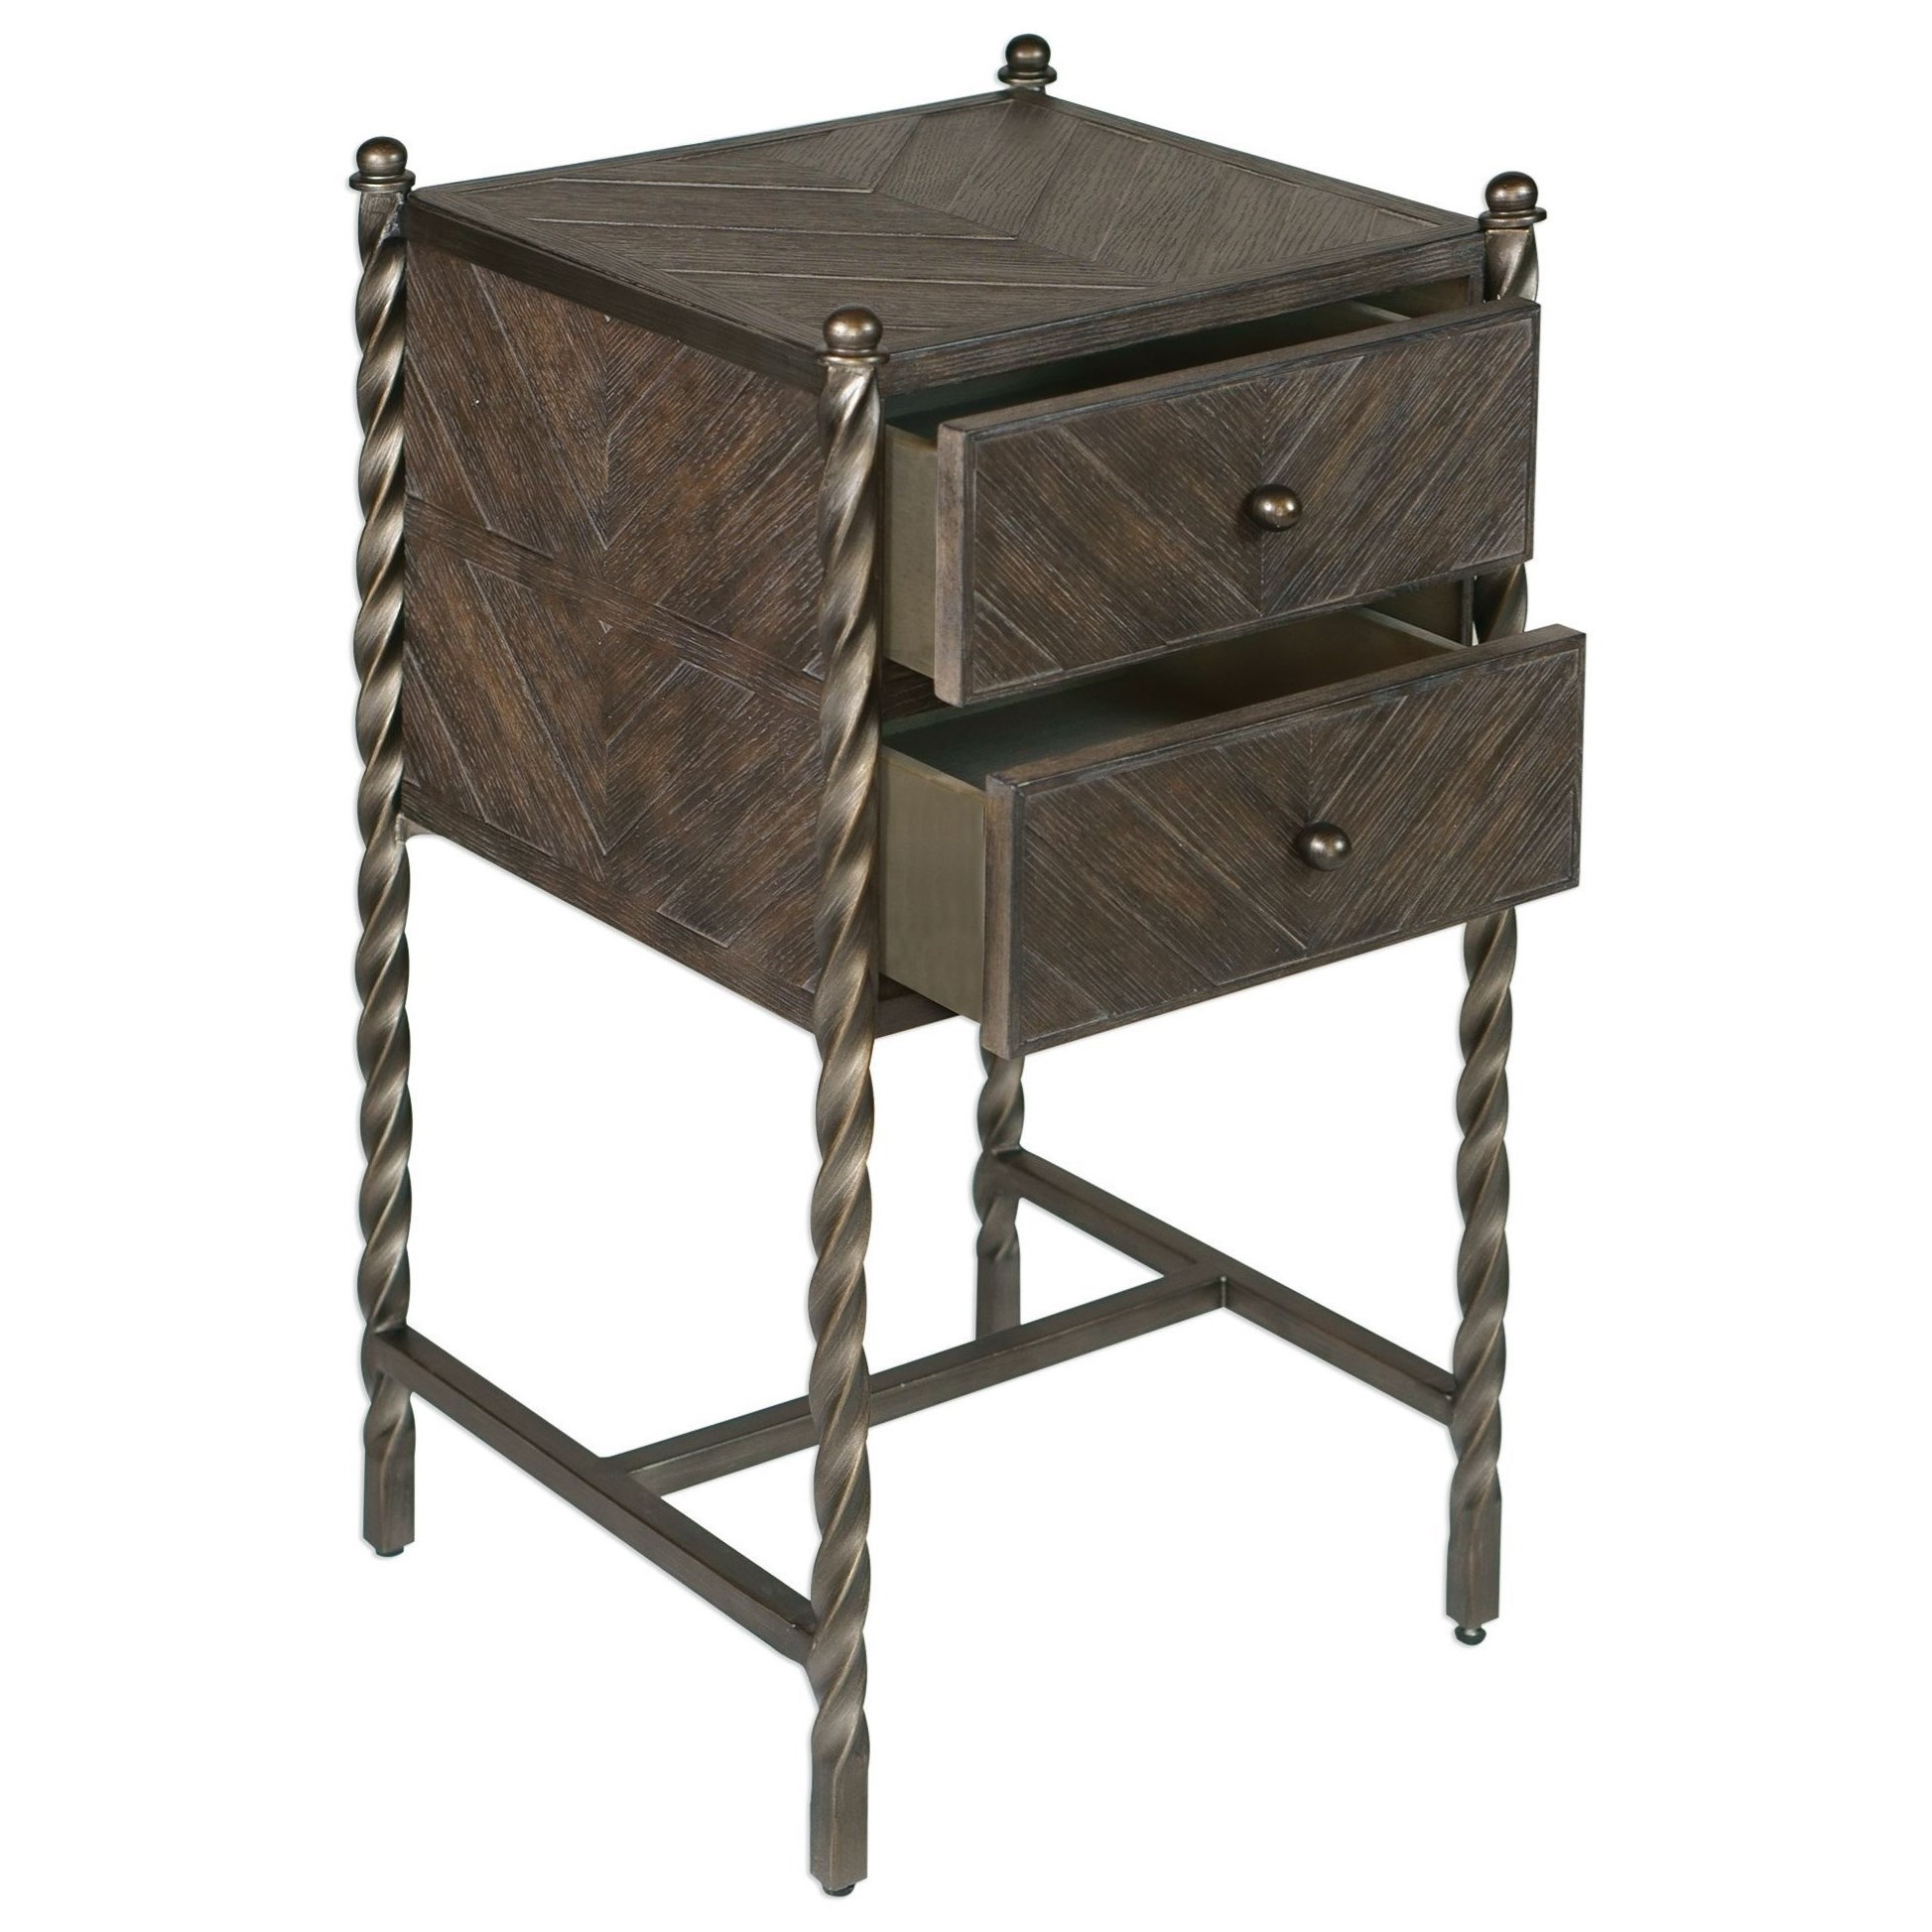 Coastal Chests of Drawers Accent Rustic Weathered Commode Wooden Storage Console